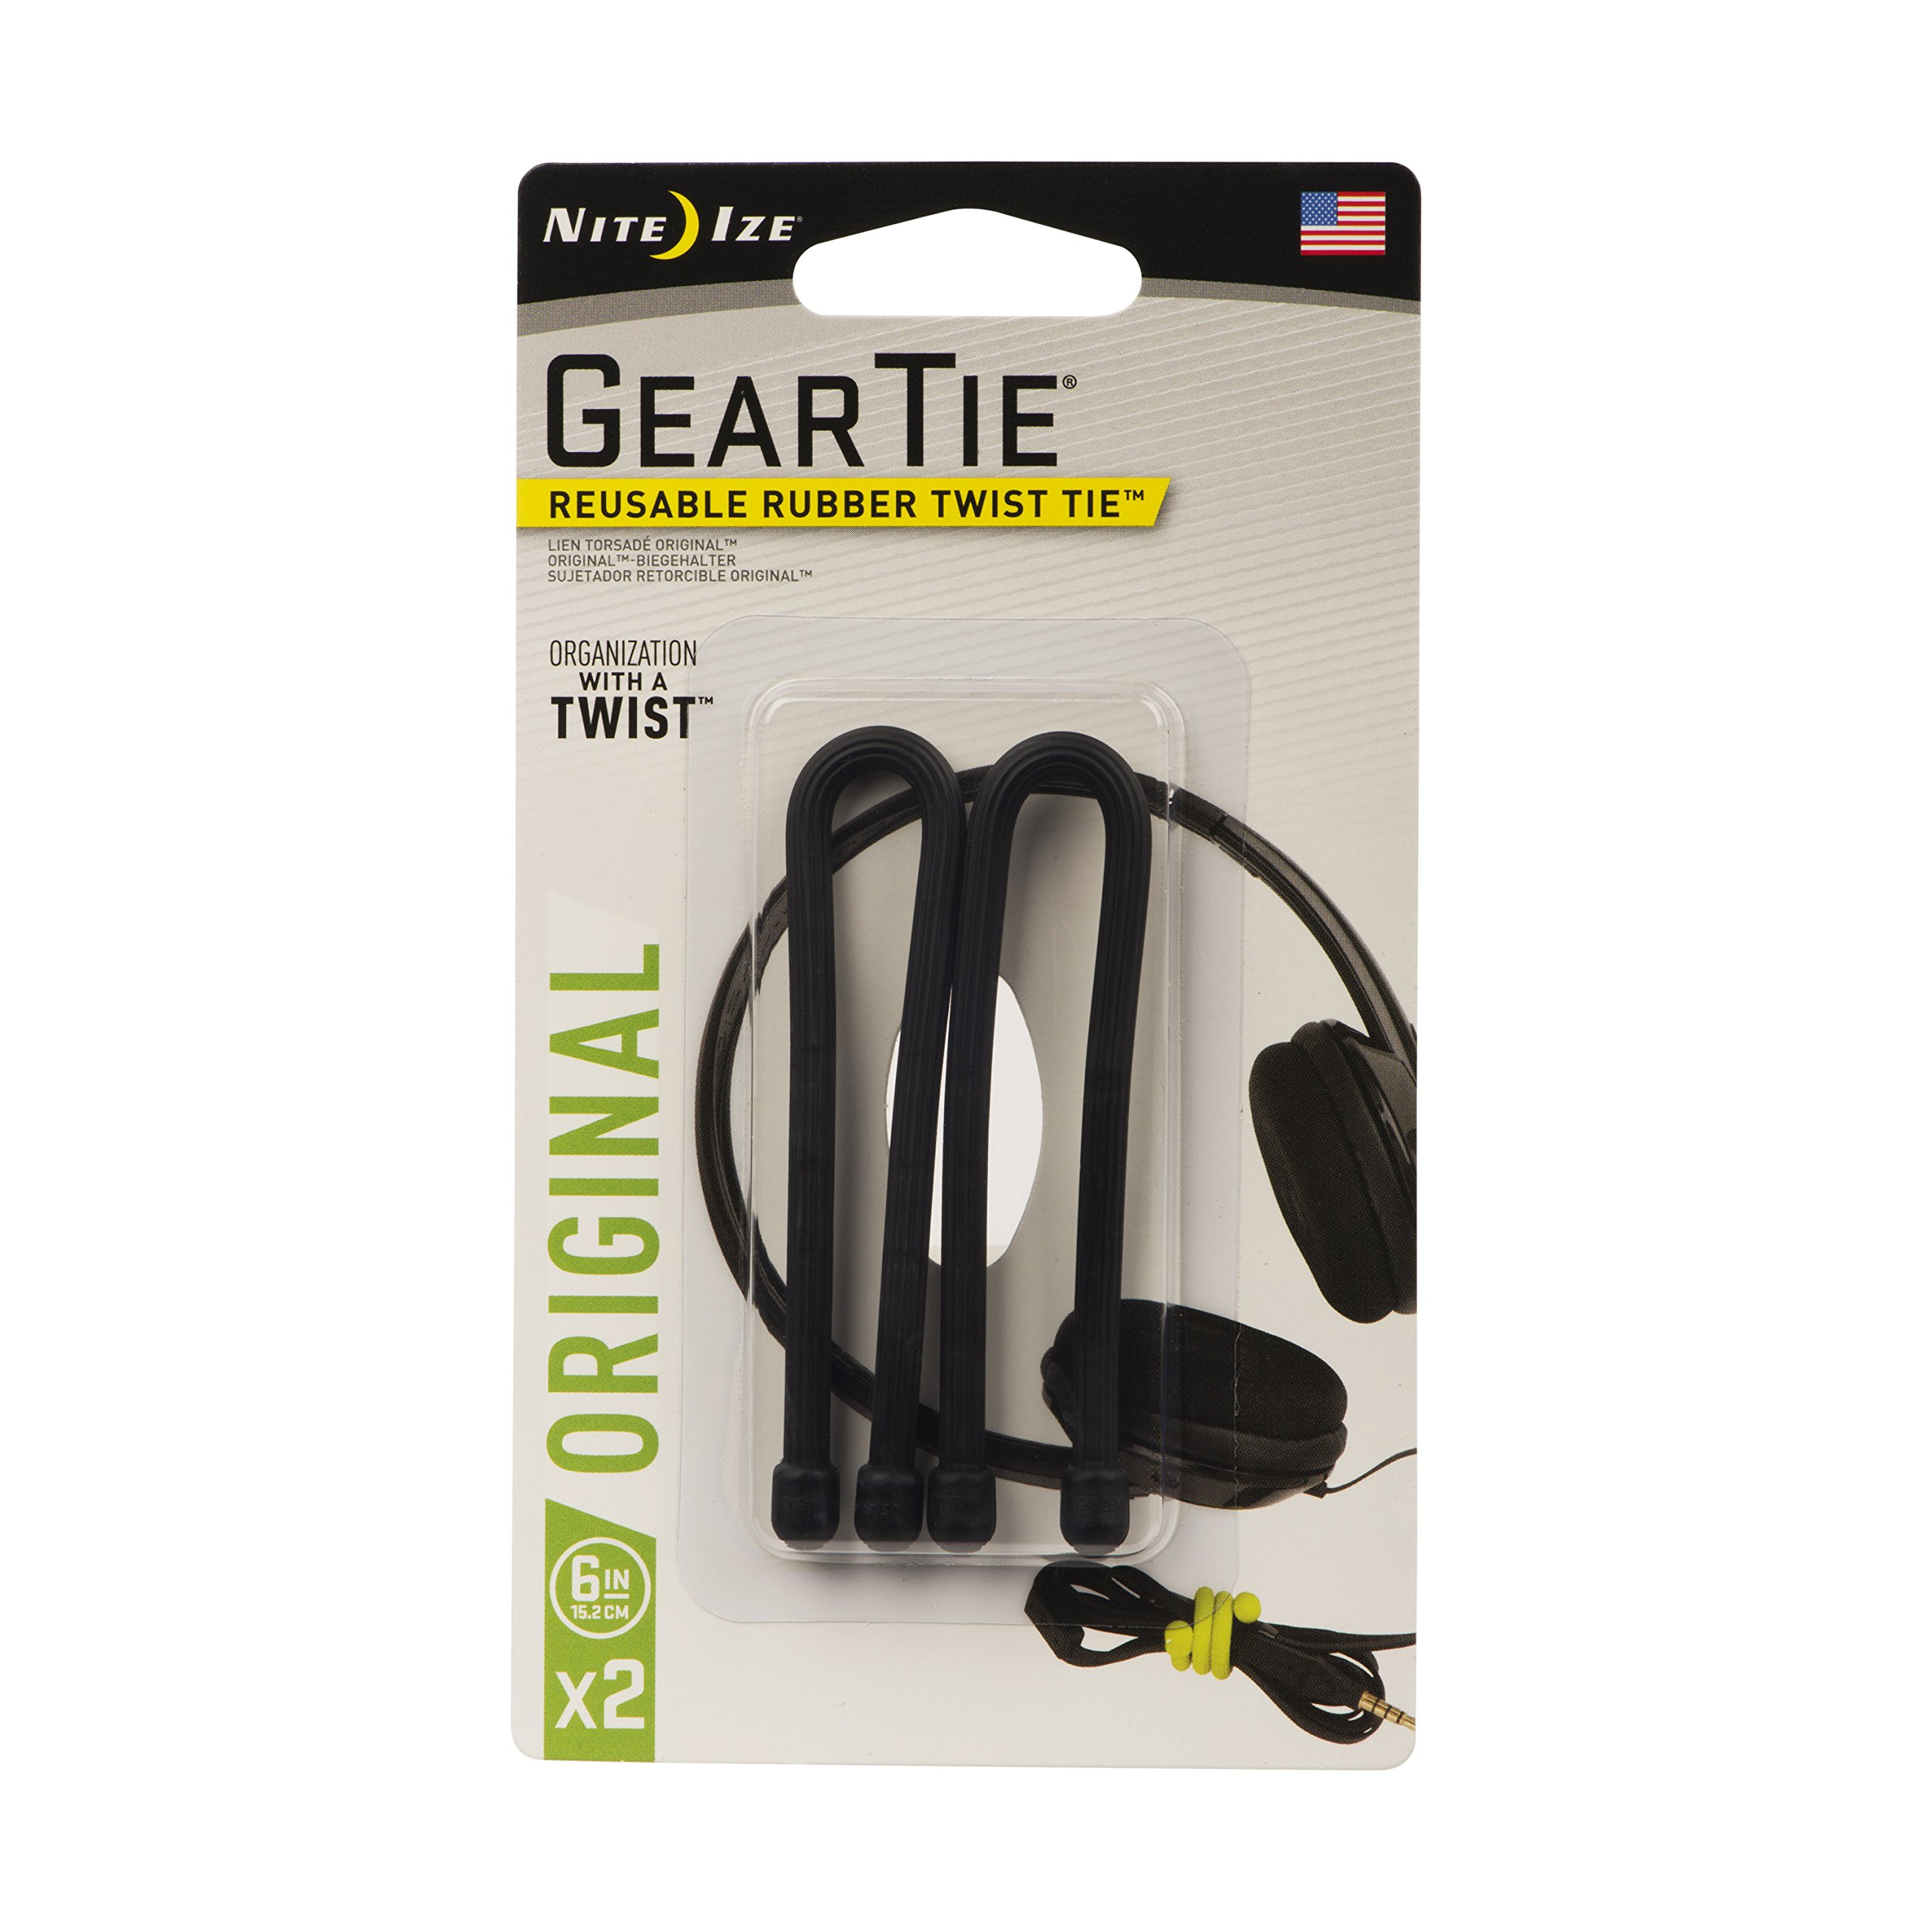 Nite Ize Original Gear Tie, Reusable Rubber Twist Tie, 6-Inch, Black, 2 Pack, Made in the USA by Nite Ize (Image #1)